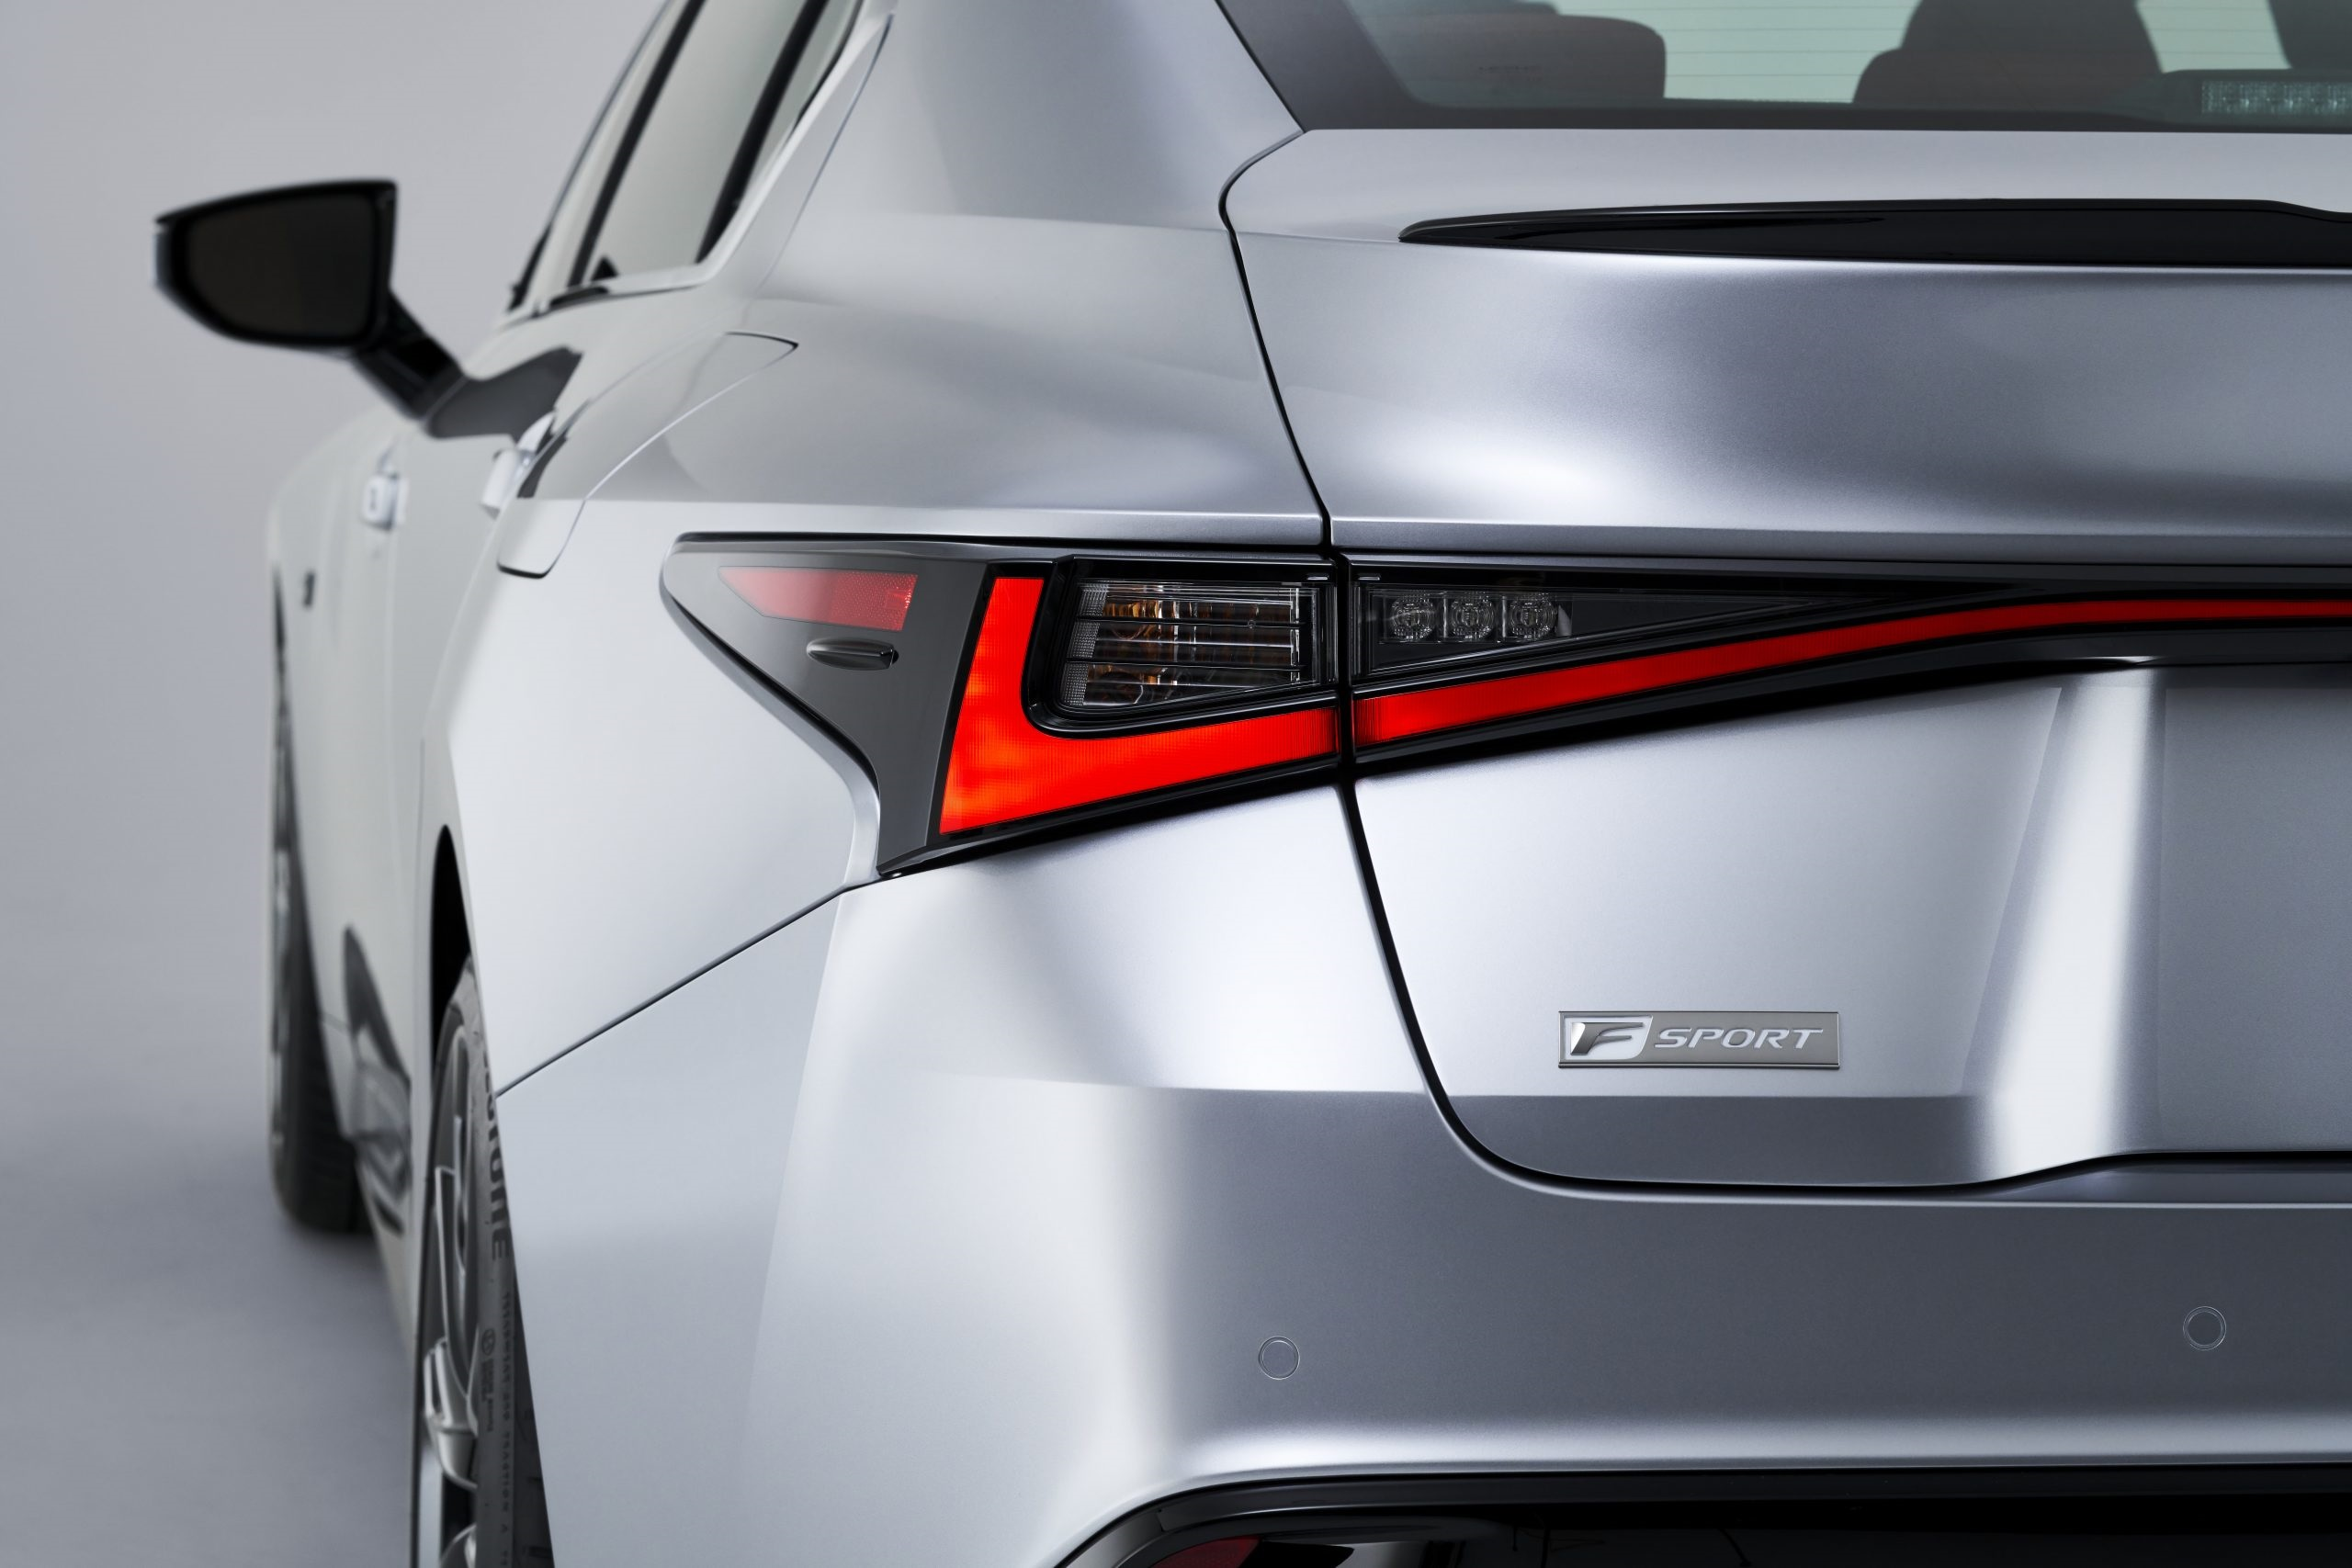 The taillights in the 2021 IS 350 F Sport